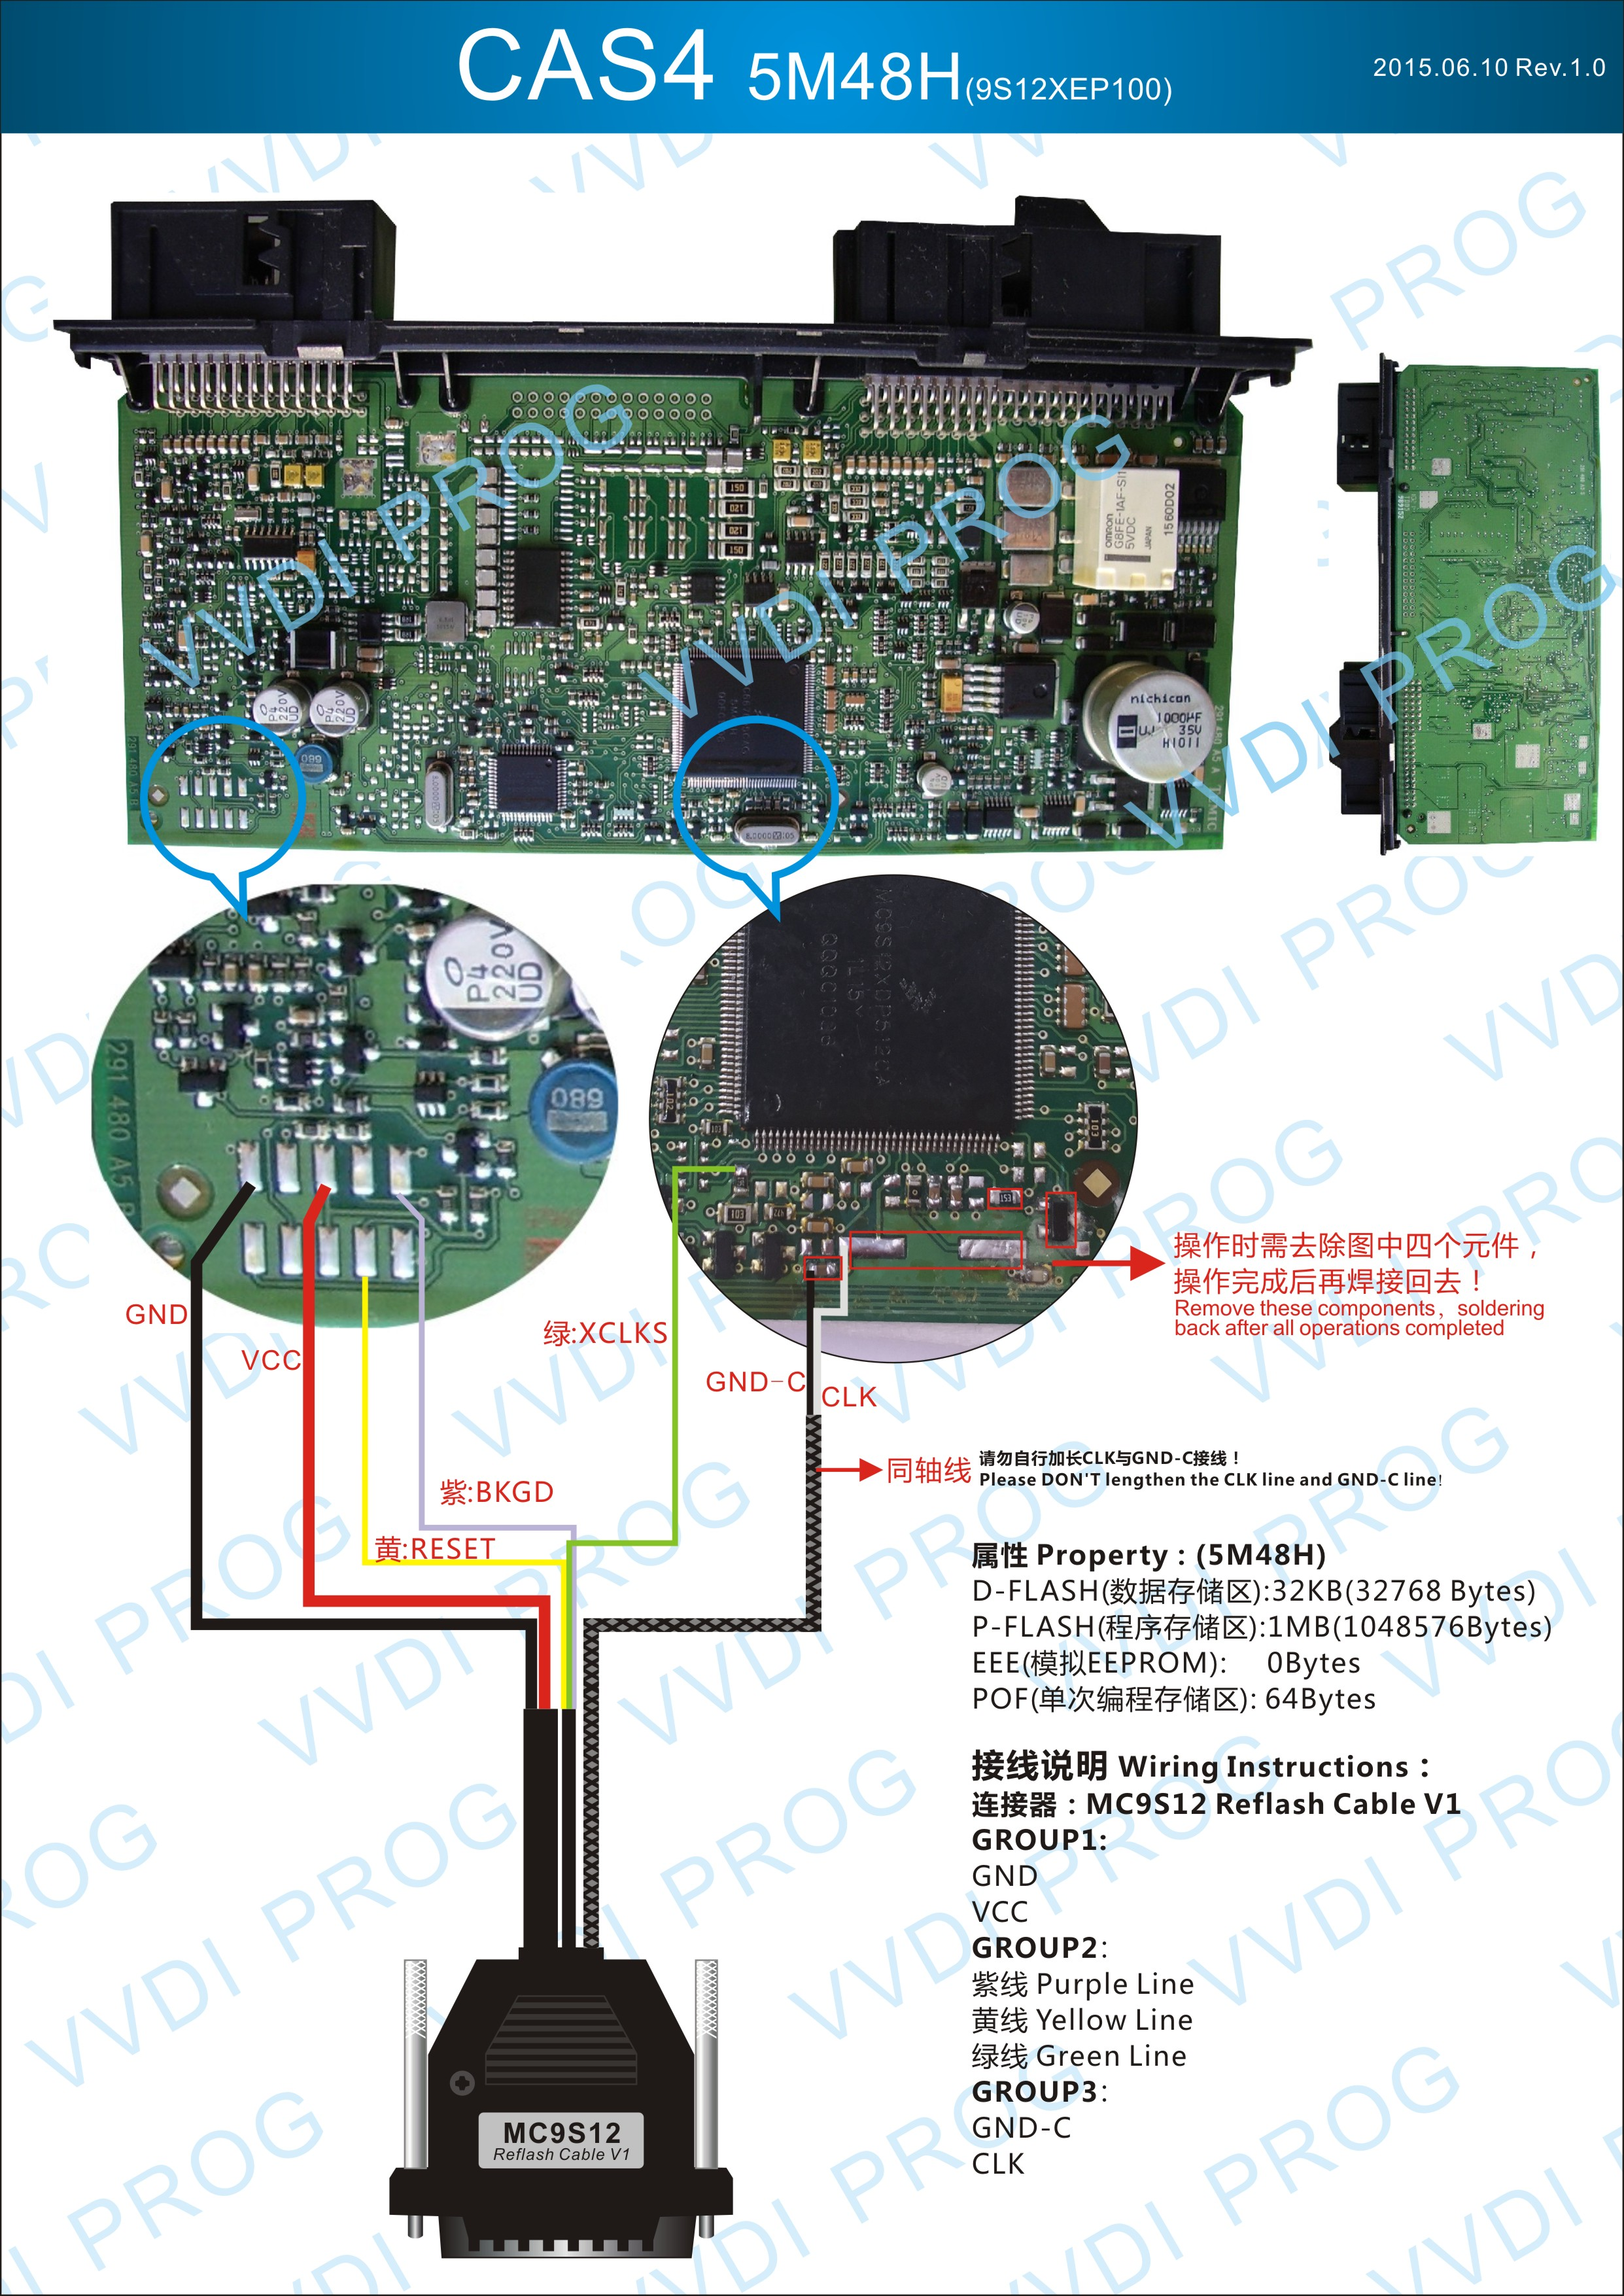 bmw m50 wiring diagram weg capacitor ecu toyskids co how vvdi prog work on cas2 cas 3 cas4 ews4 e60